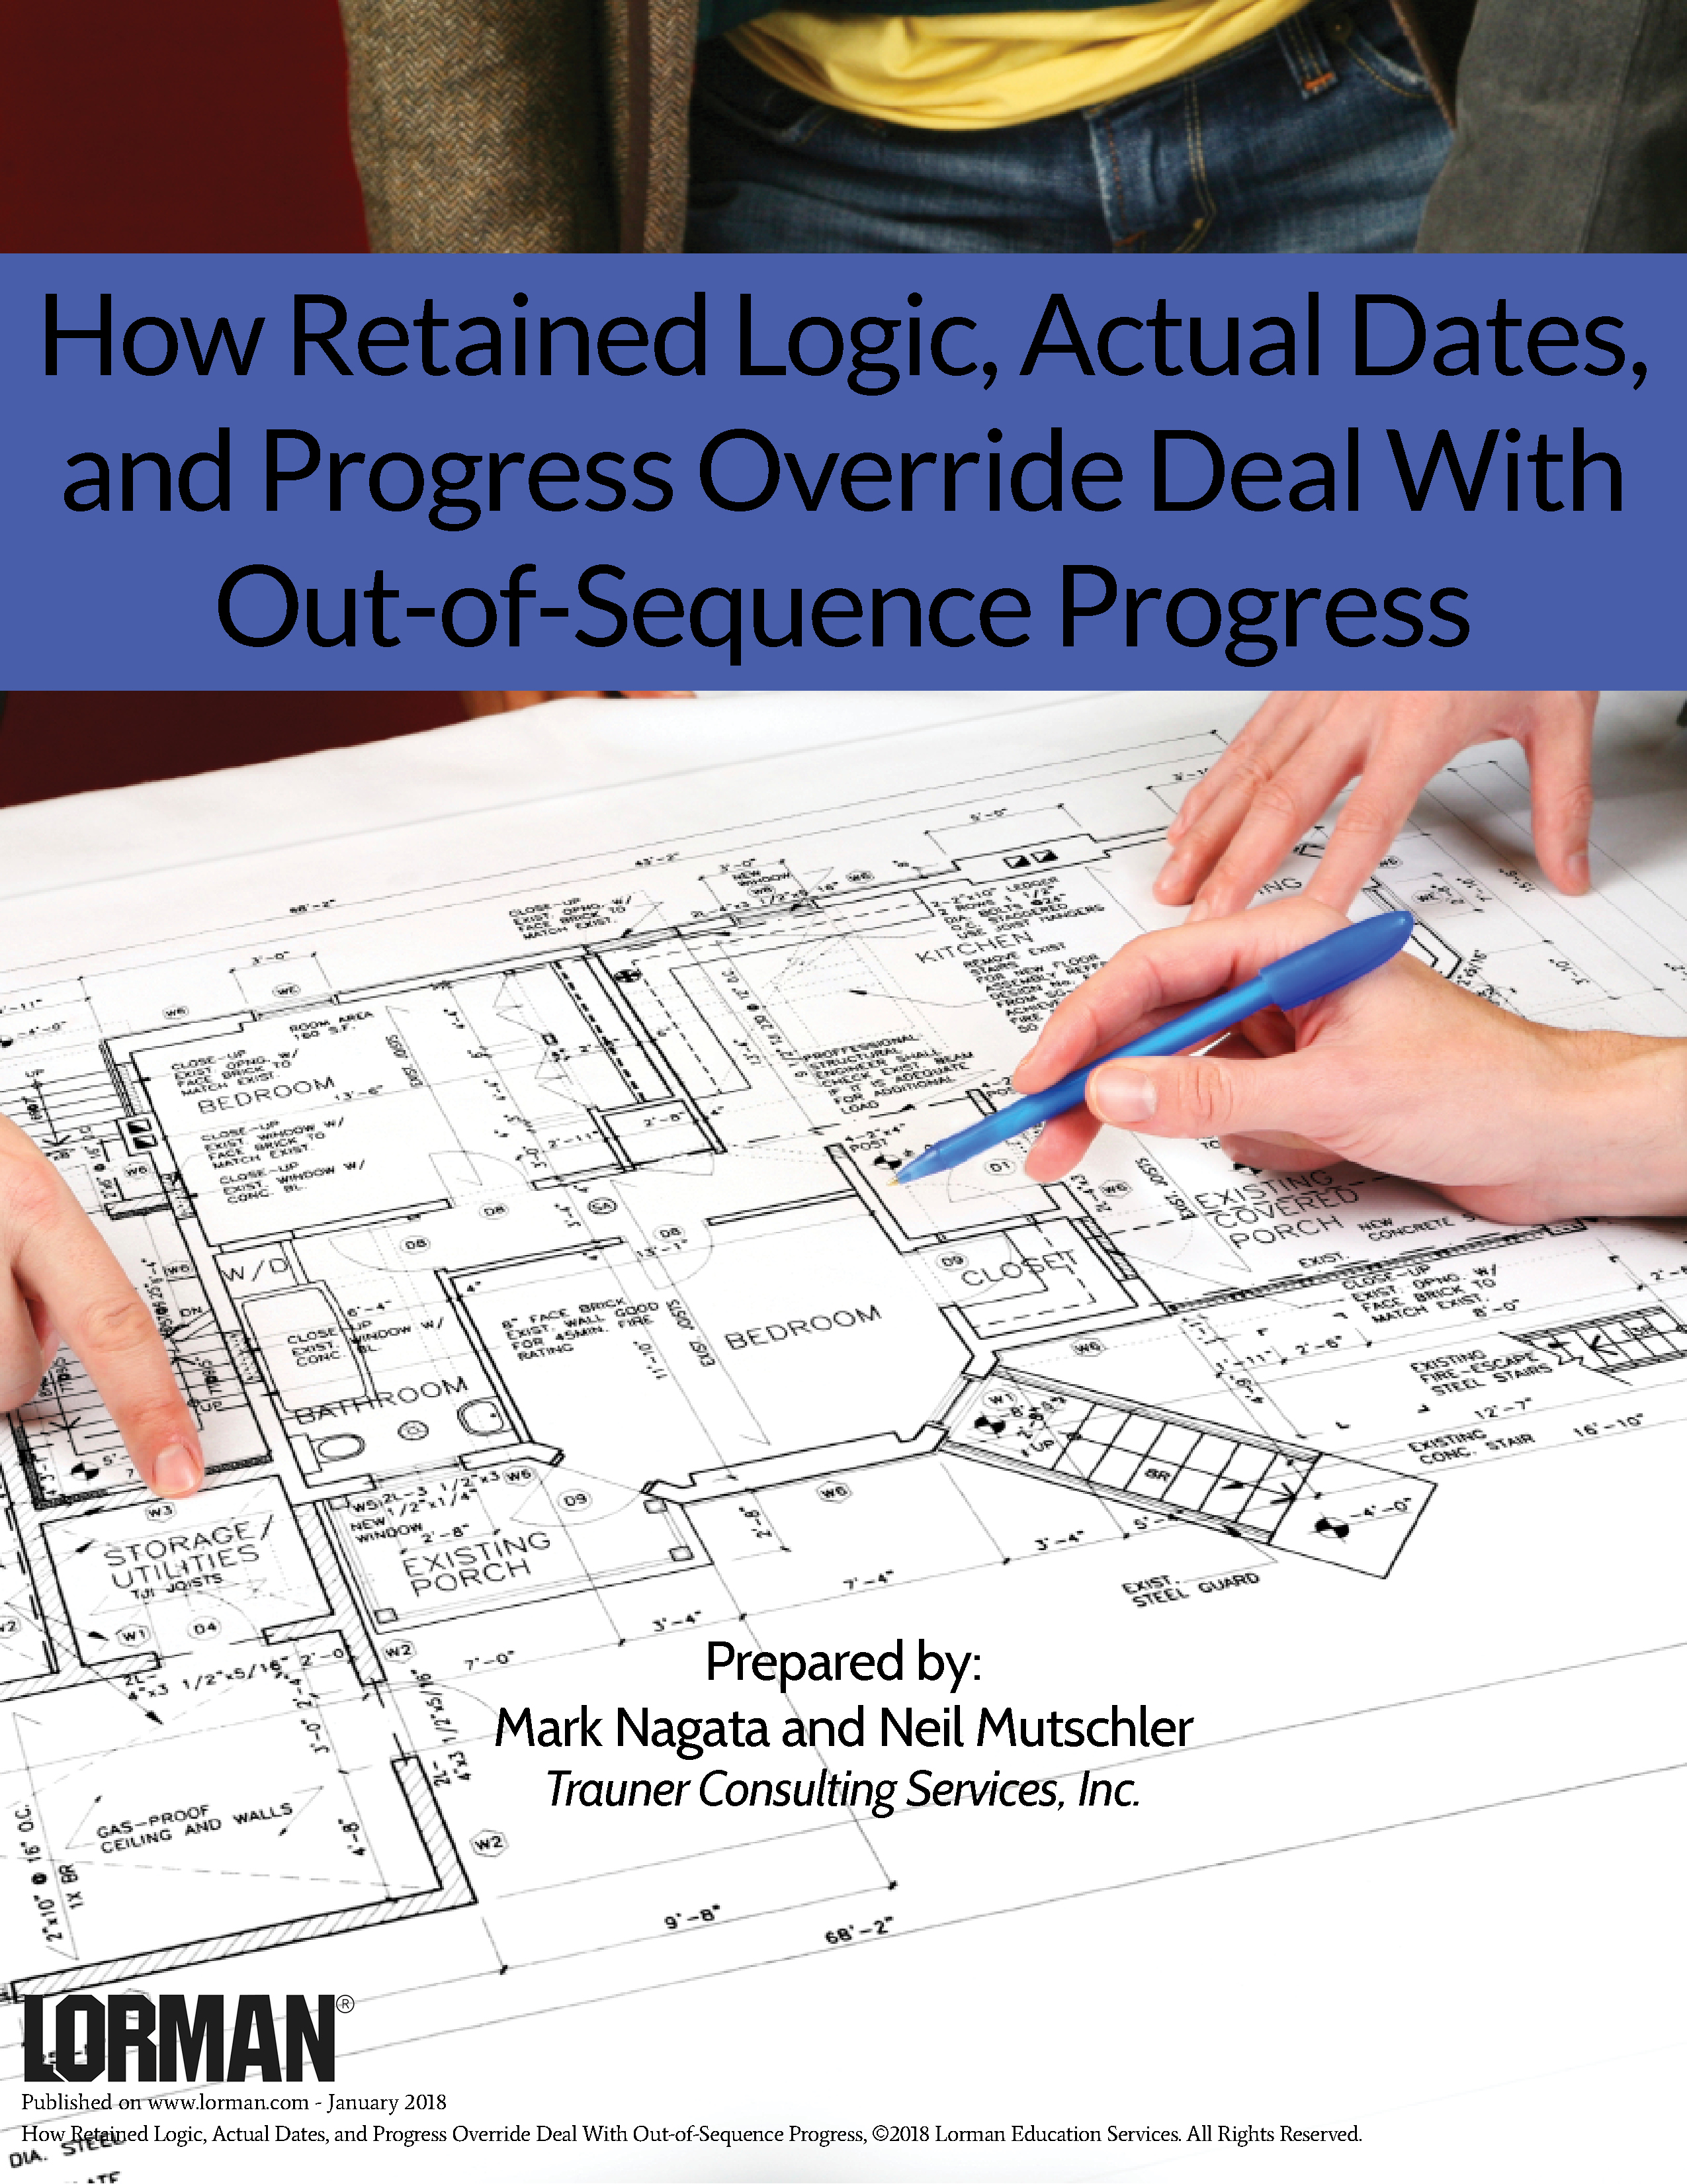 How Retained Logic, Actual Dates, and Progress Override Deal With Out-of-Sequence Progress